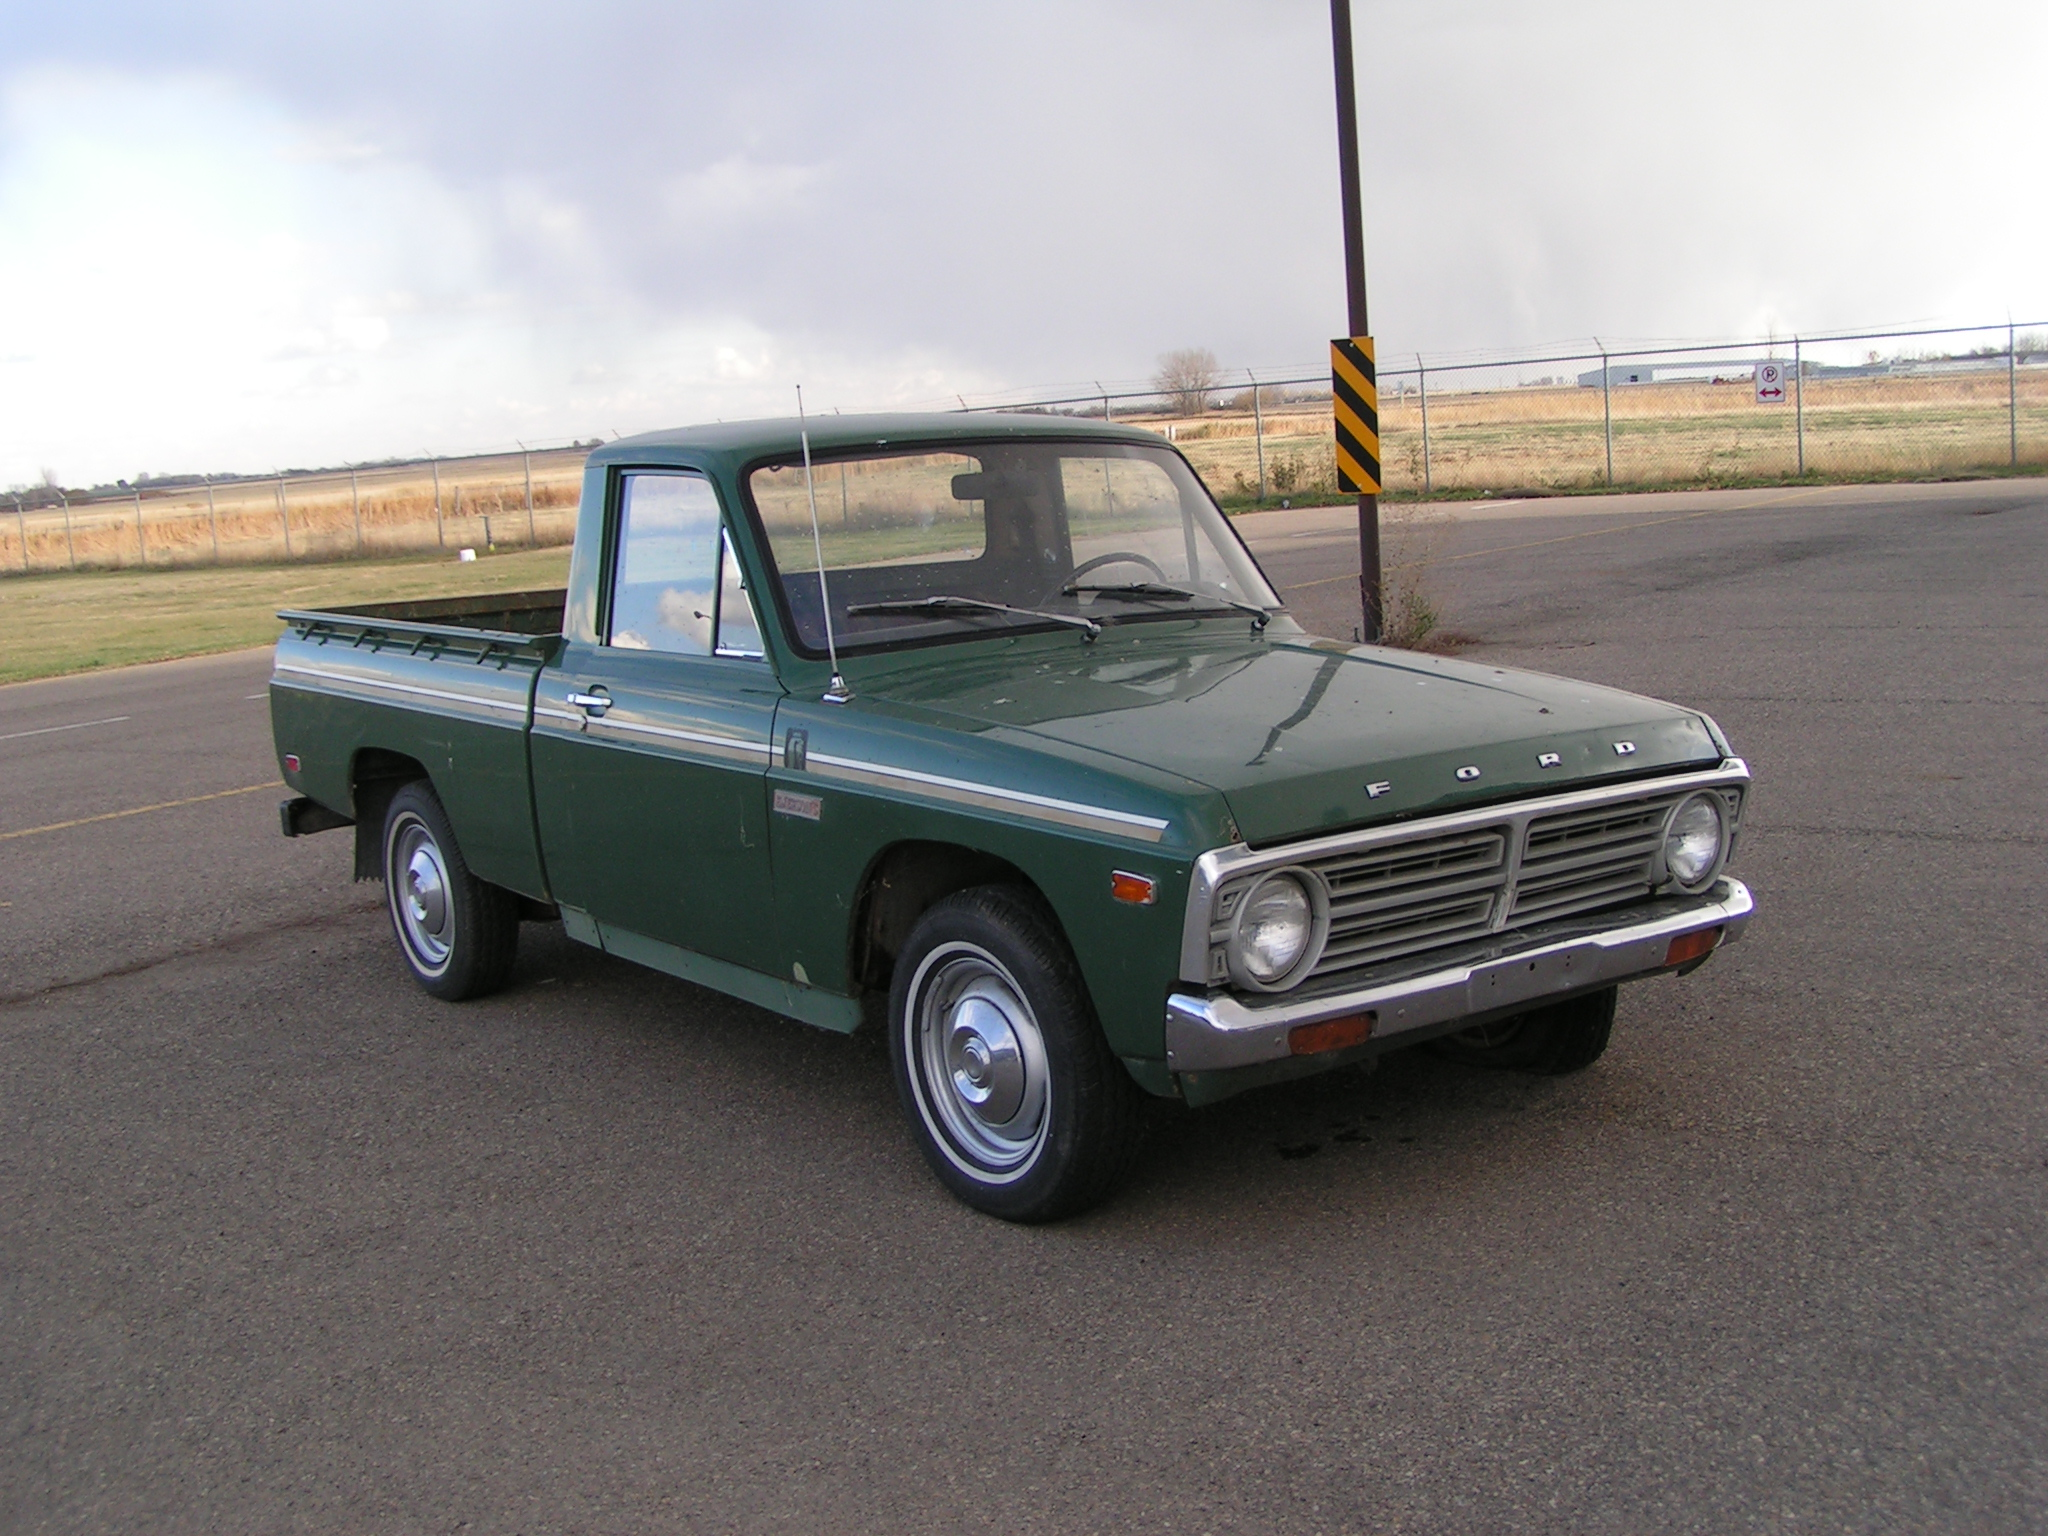 File:Ford Courier.jpg - Wikipedia, the free encyclopedia